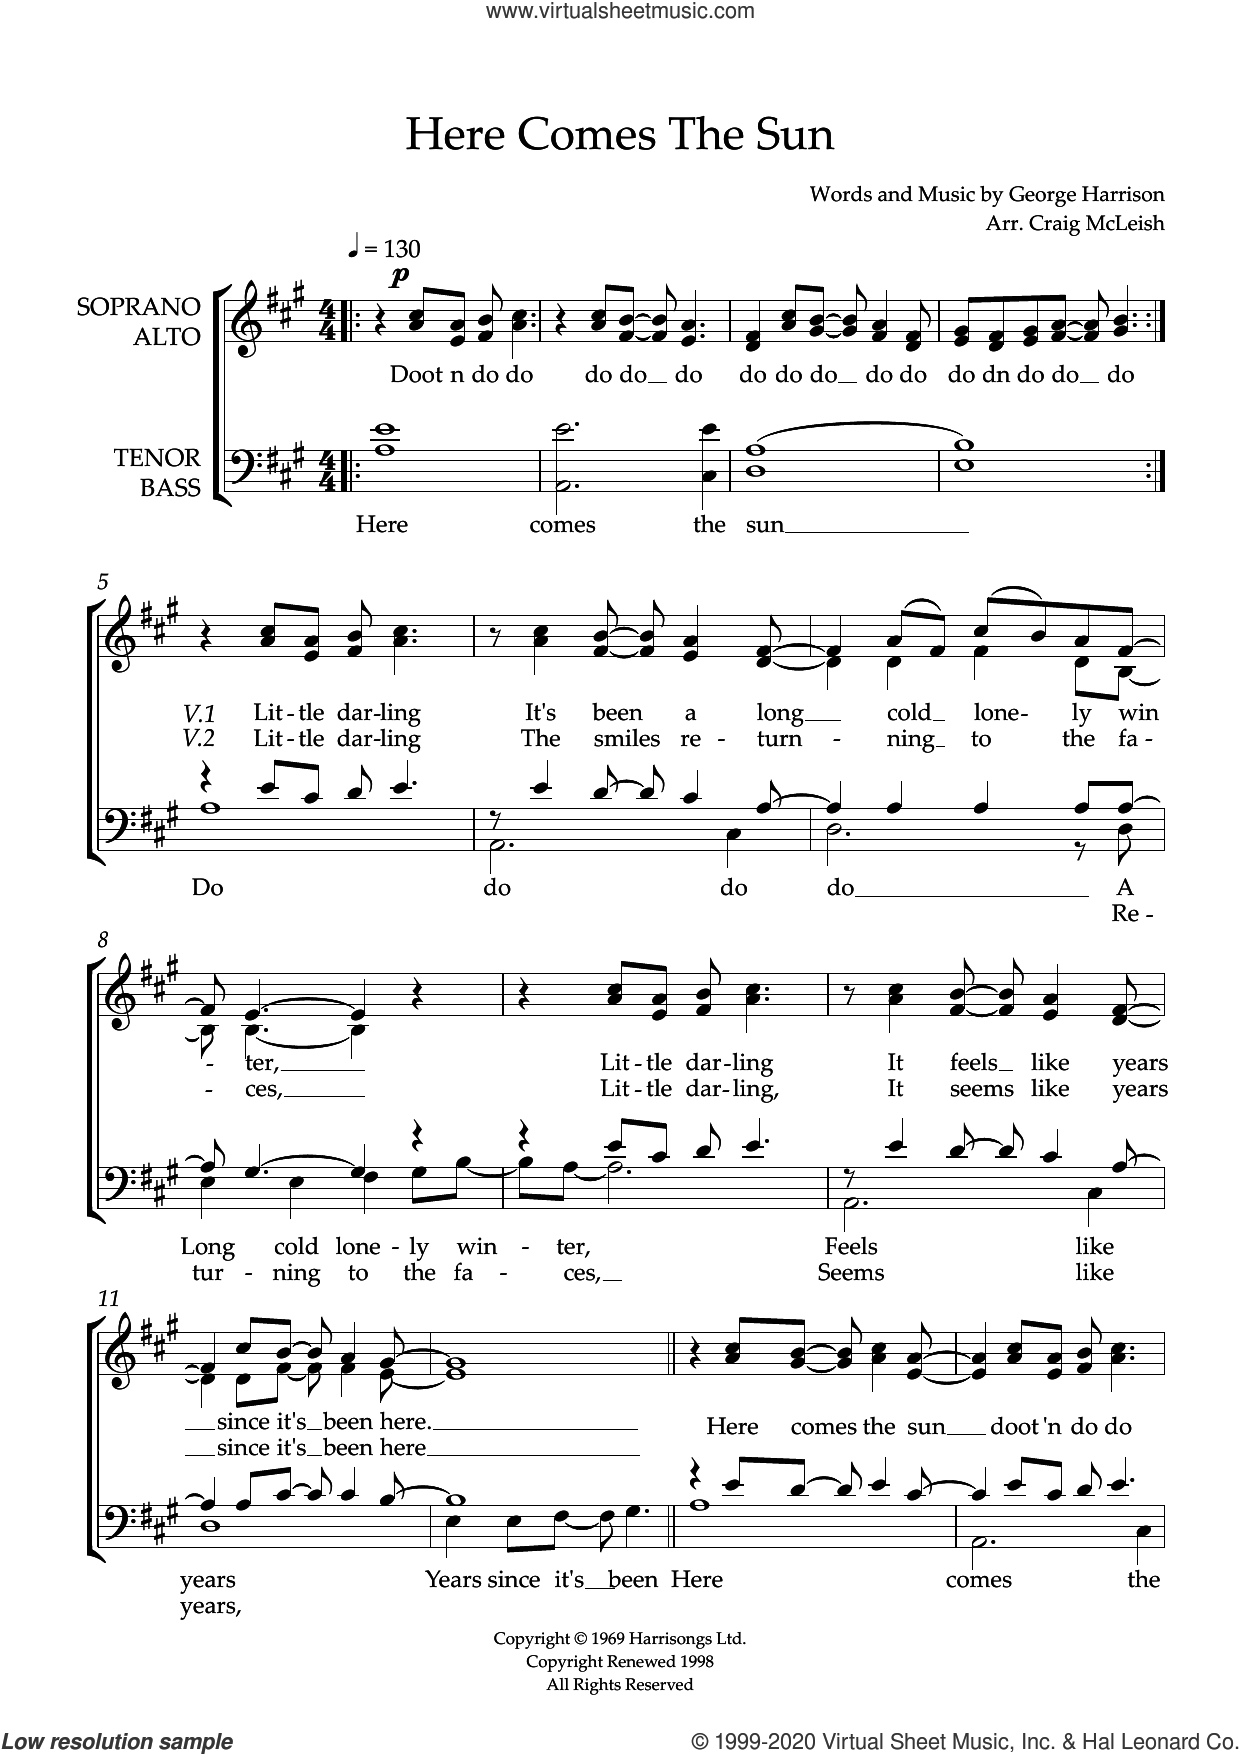 Here Comes The Sun (arr. Craig McLeish) sheet music for choir (SATB: soprano, alto, tenor, bass) by The Beatles, Craig McLeish and George Harrison, intermediate skill level